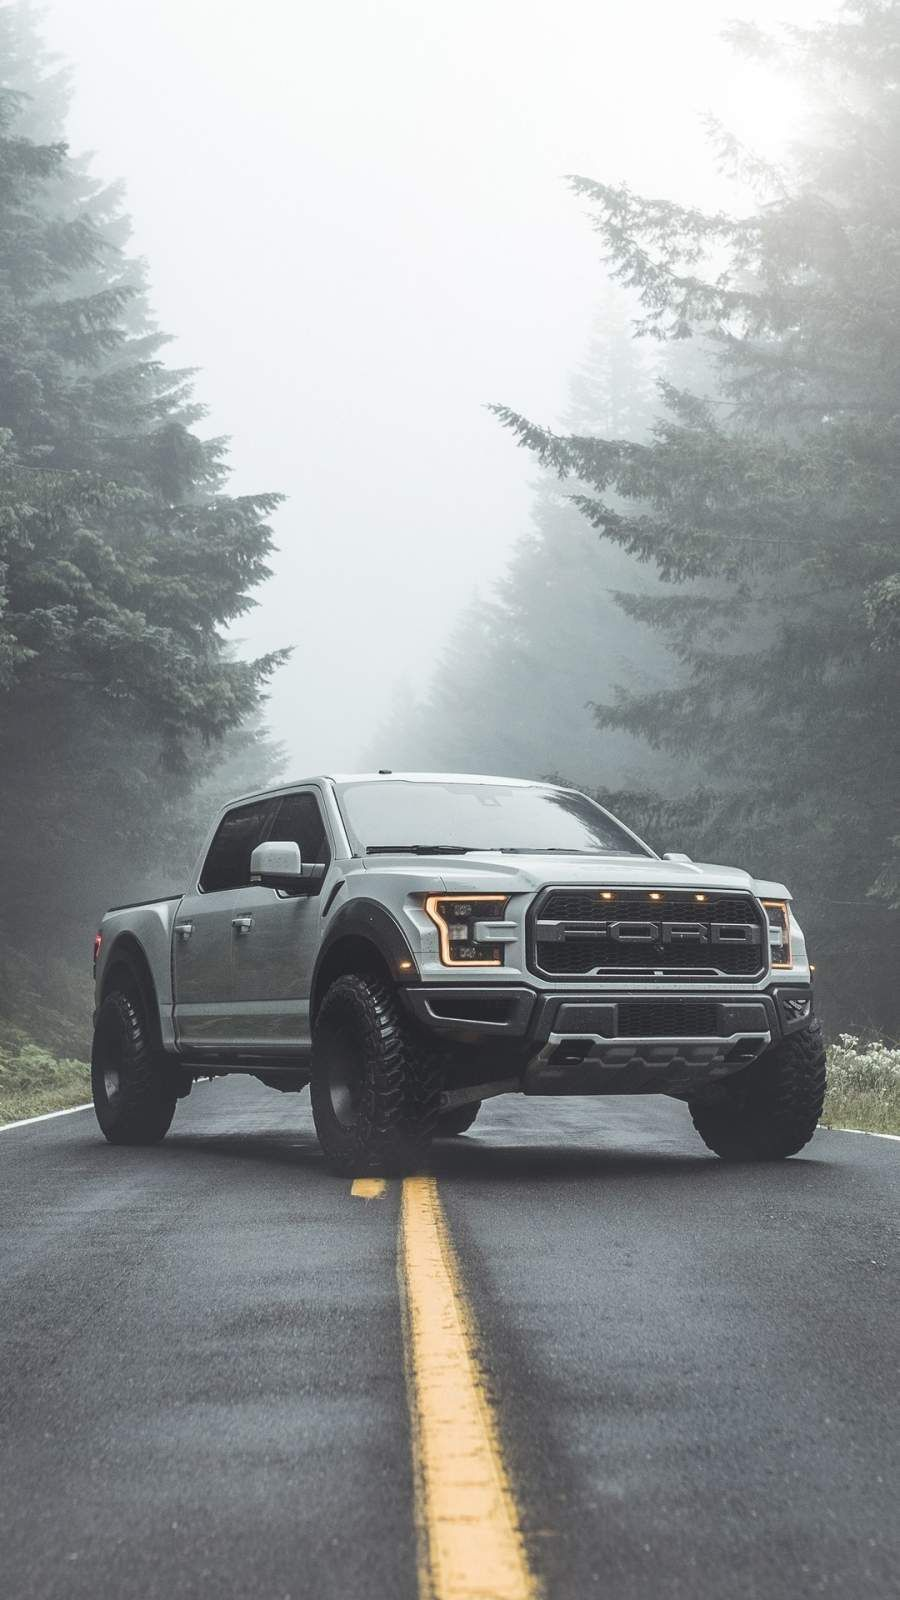 Ford Raptor Iphone Wallpaper Ford Raptor Iphone Wallpaper Coches